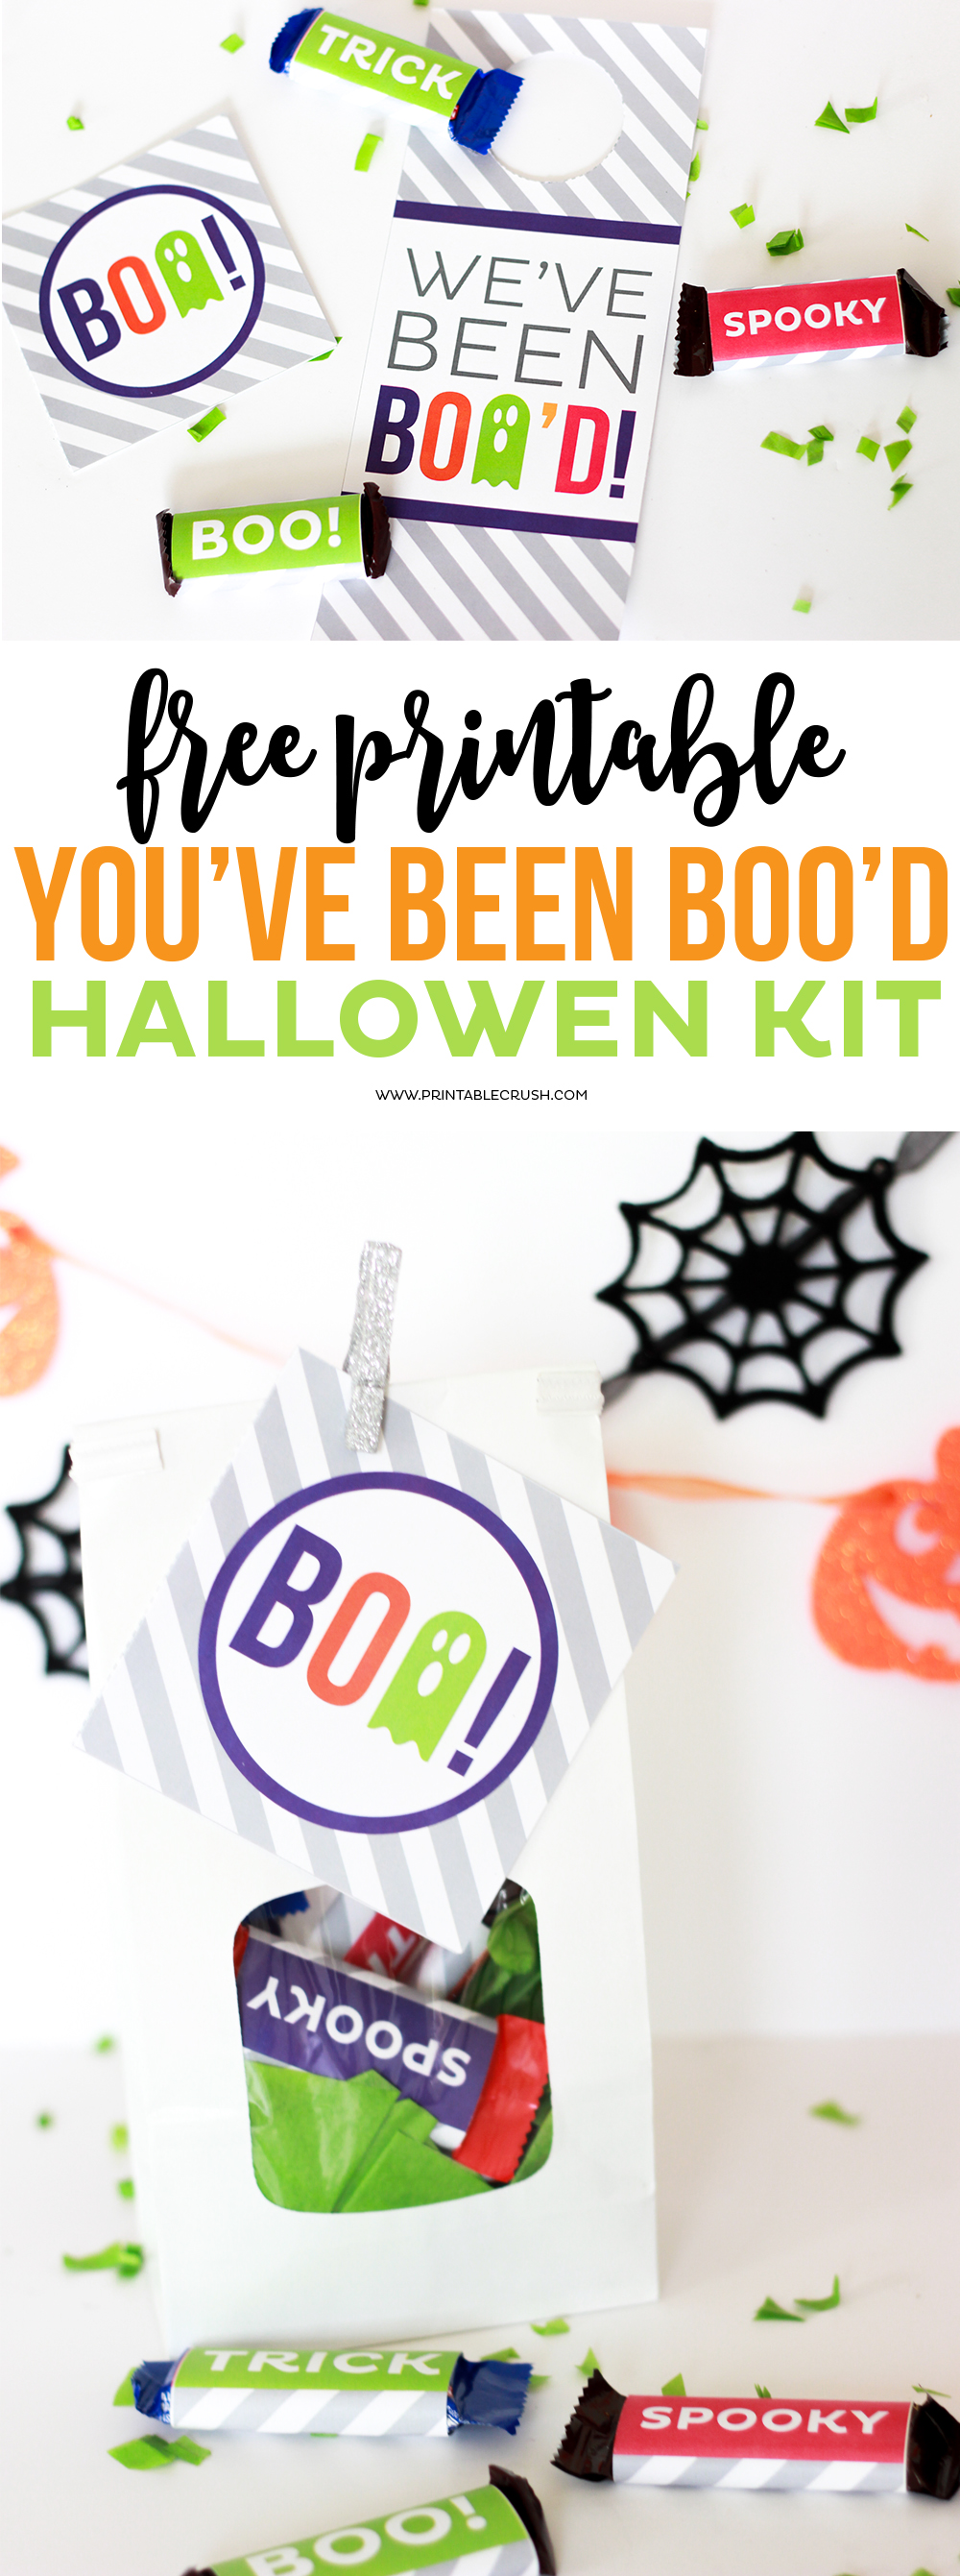 Surprise your neighbors or friends this Halloween with the FREE Printable You've Been Boo'd Halloween Kit! It includes so many fun printables!